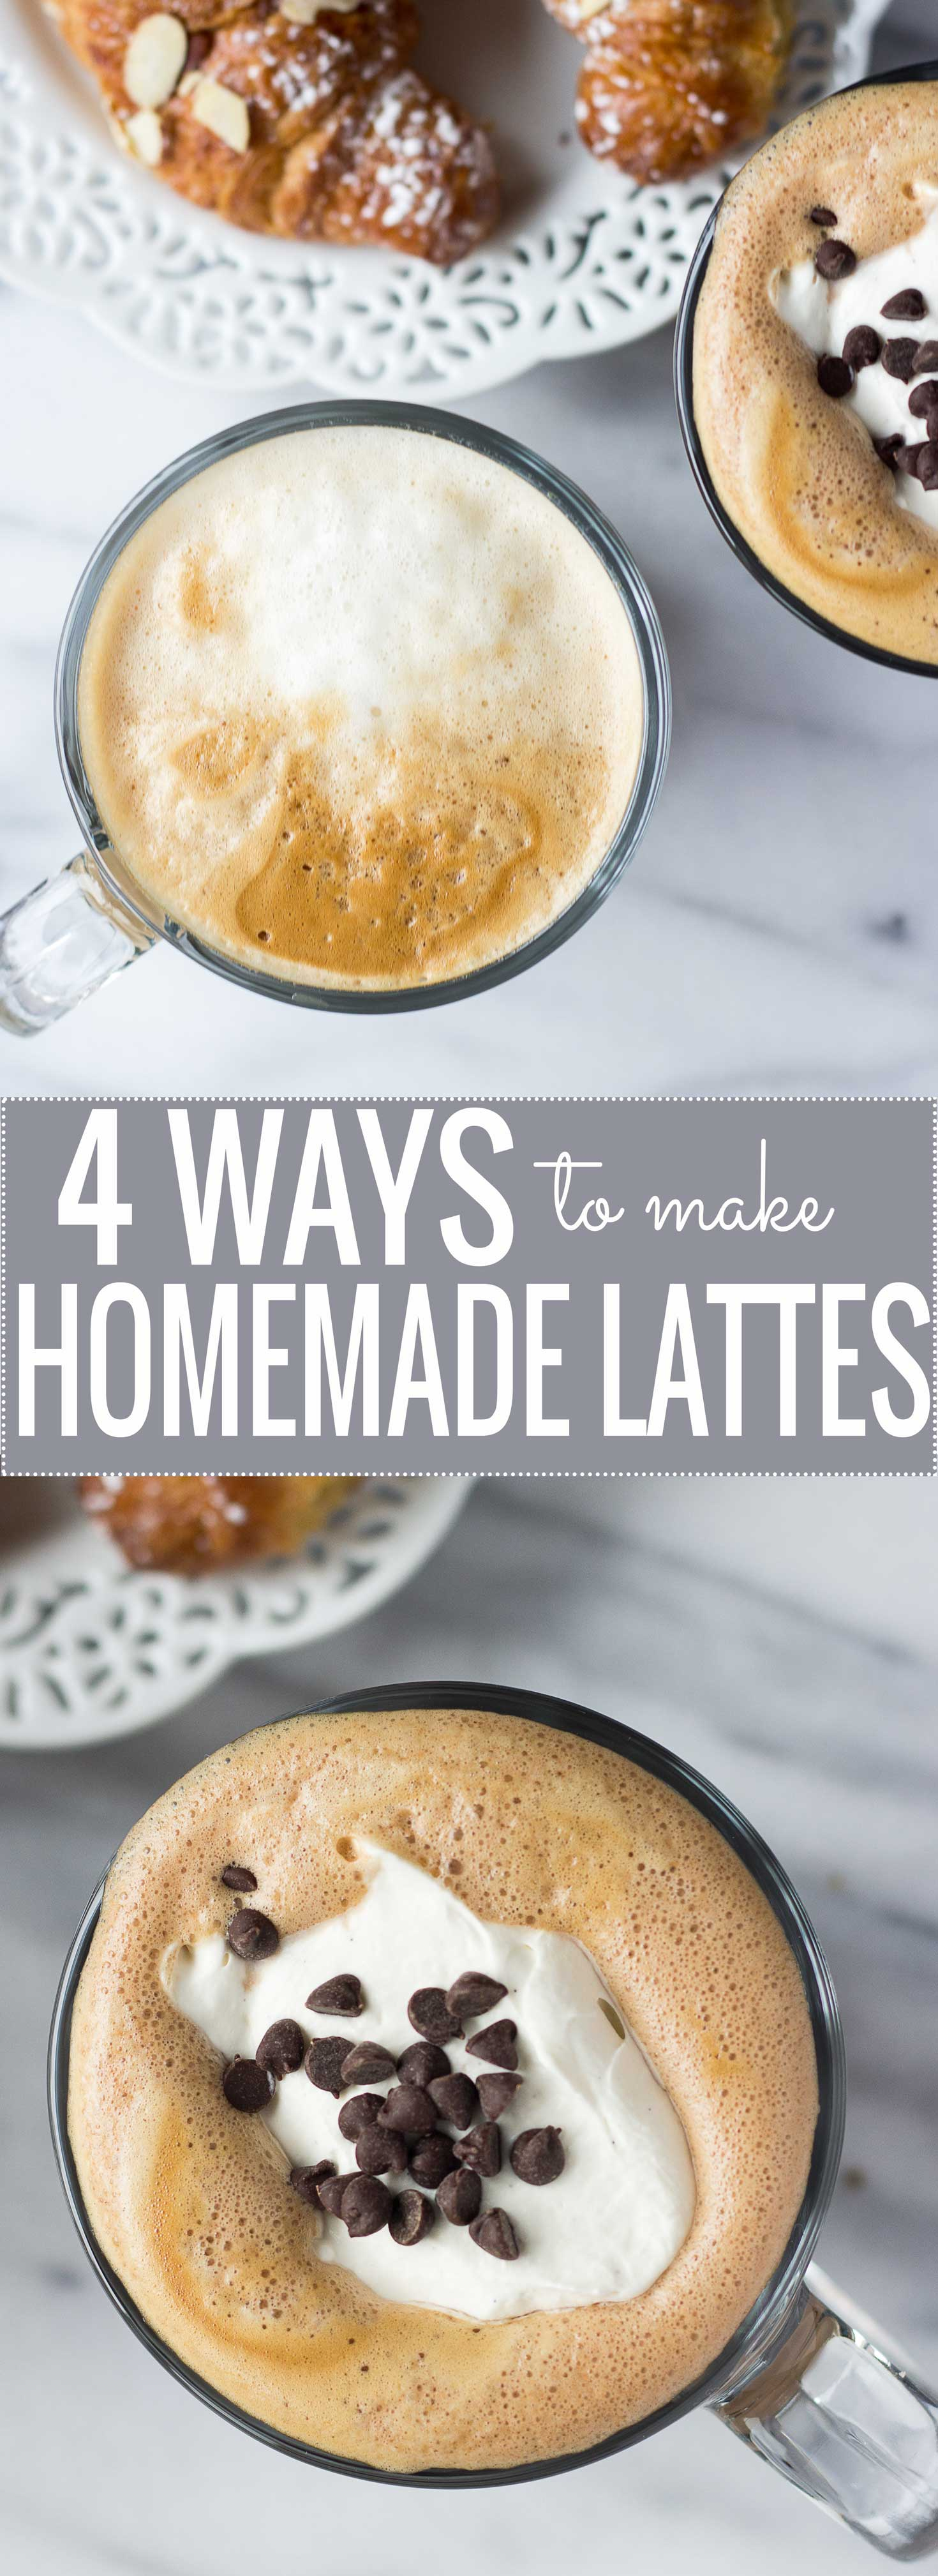 4 Ways to Make Homemade Lattes // Fork in the Kitchen